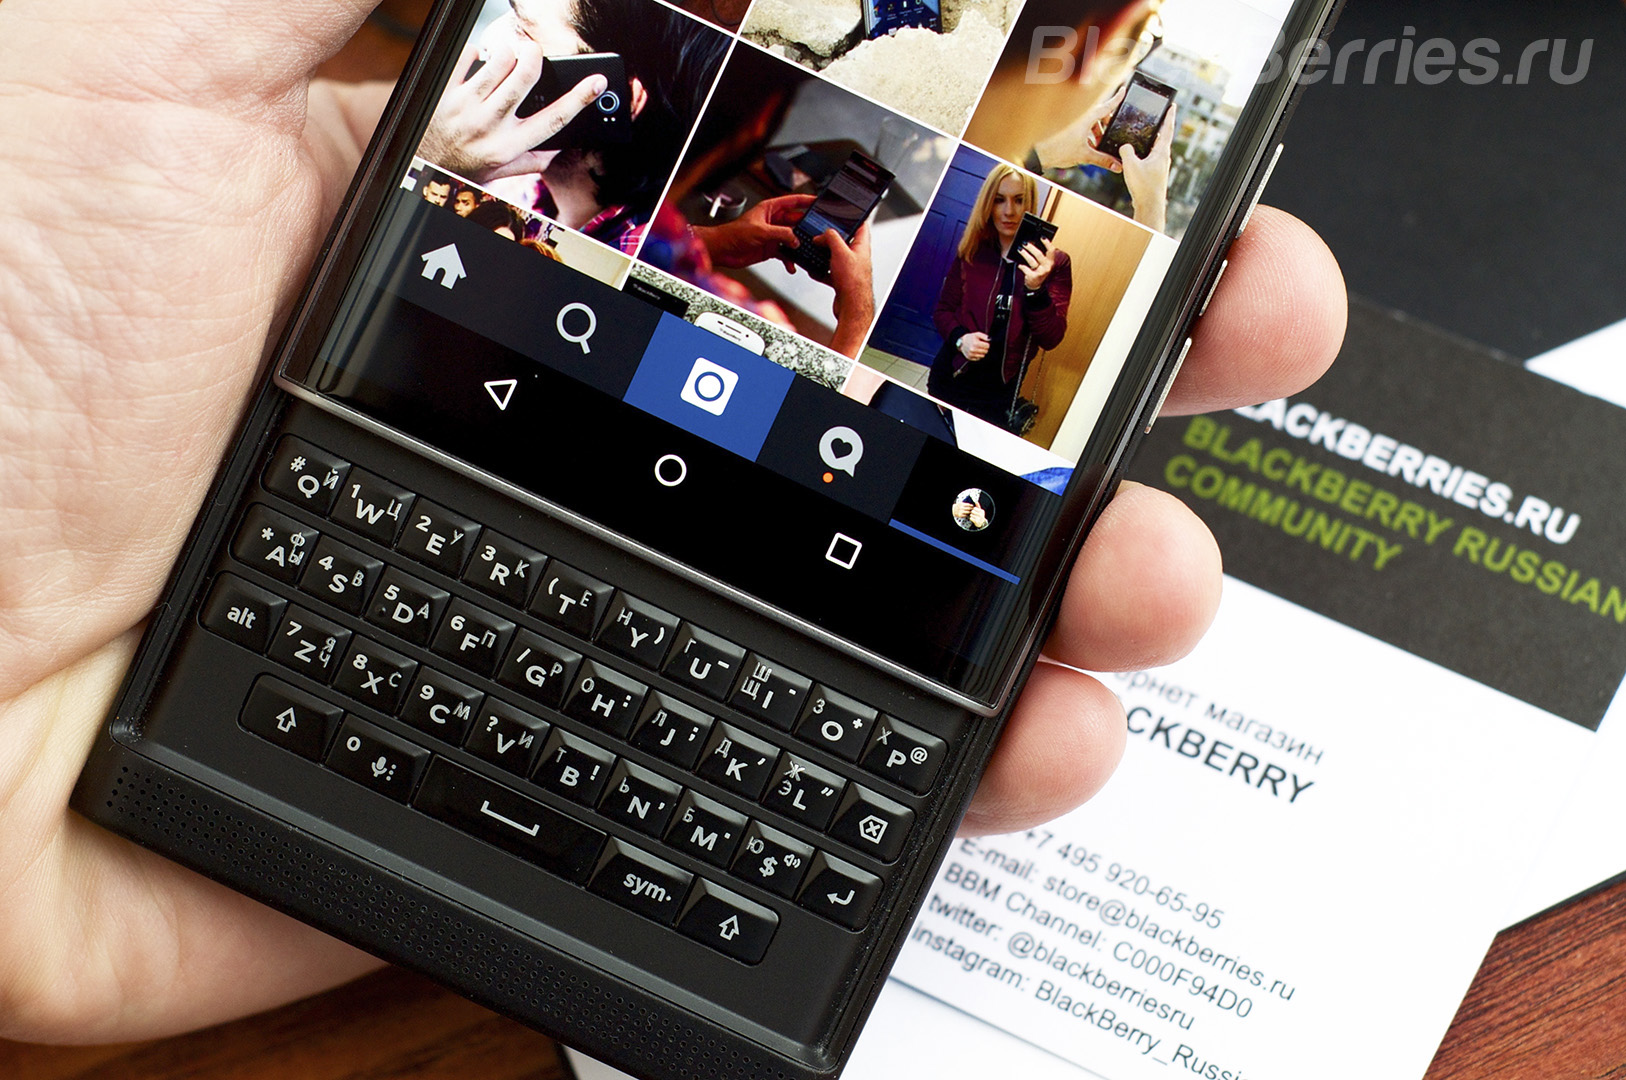 BlackBerry-Instagram-1